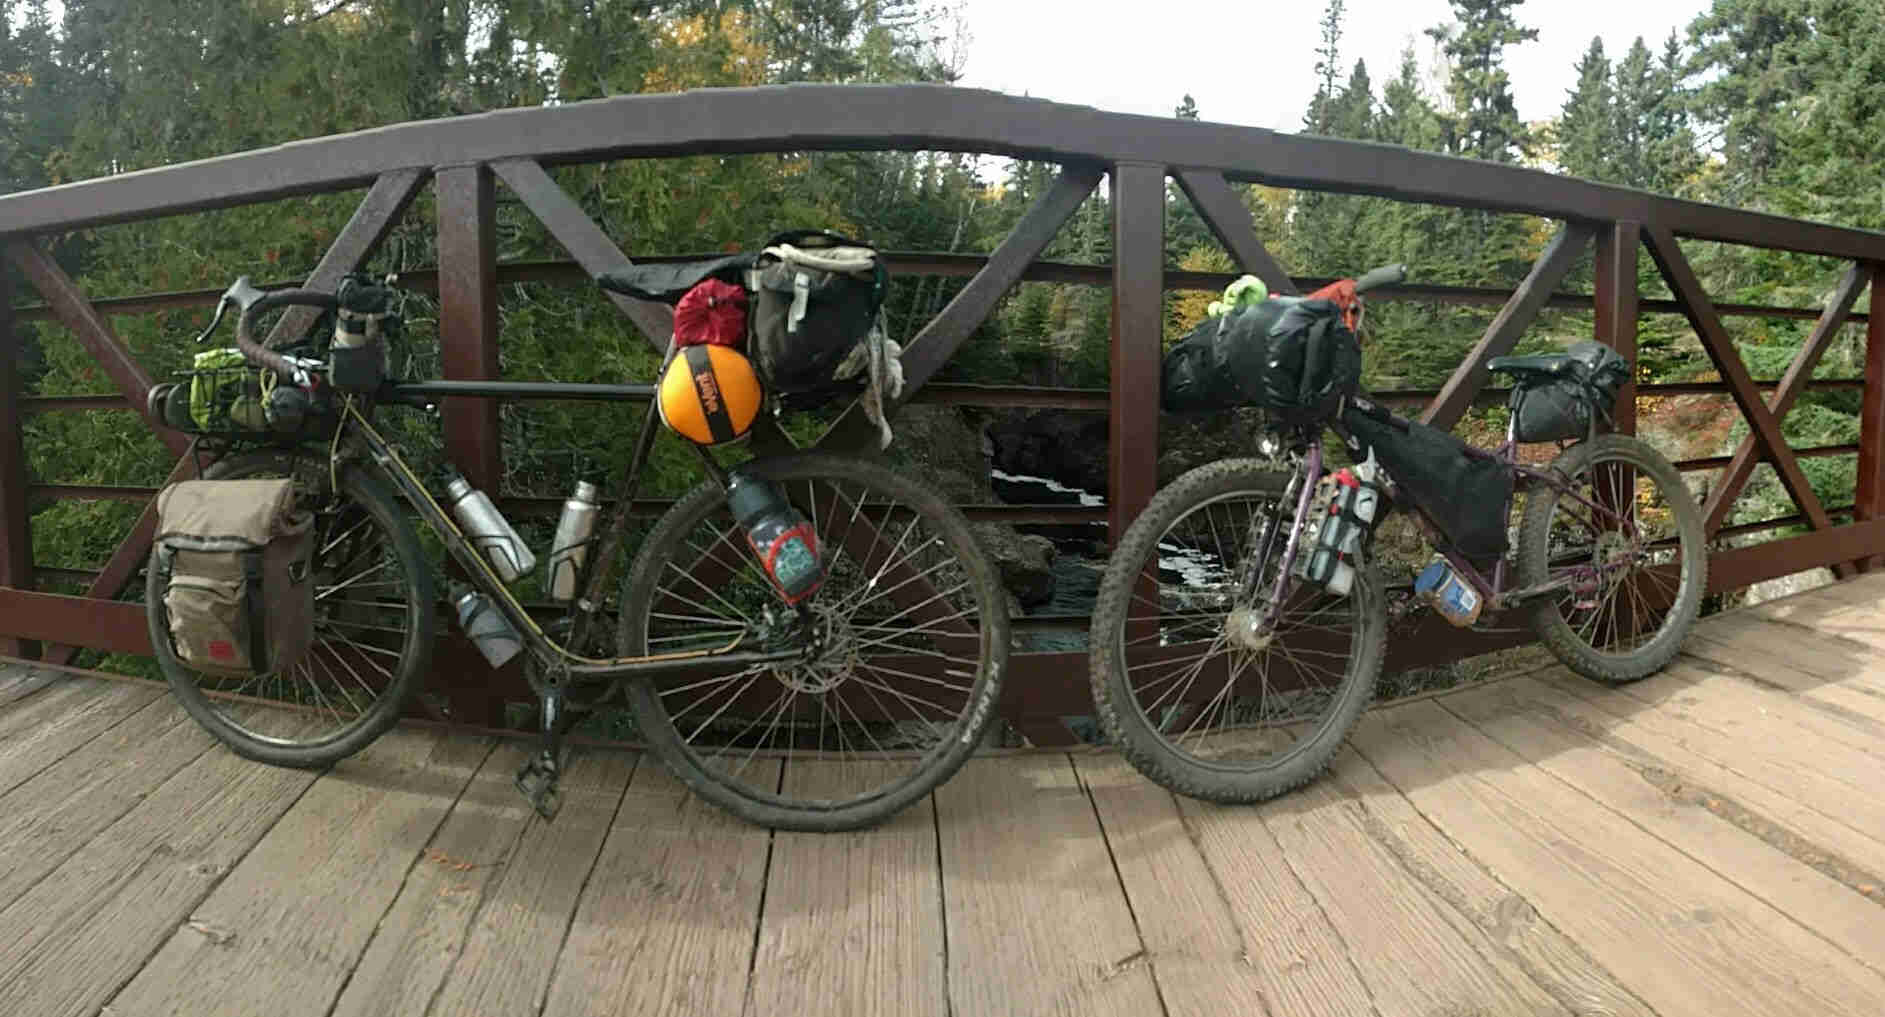 Left side view of 2 Surly bikes, loaded with gear, leaning on steel rail of a wood bridge over a river with trees surrounding it